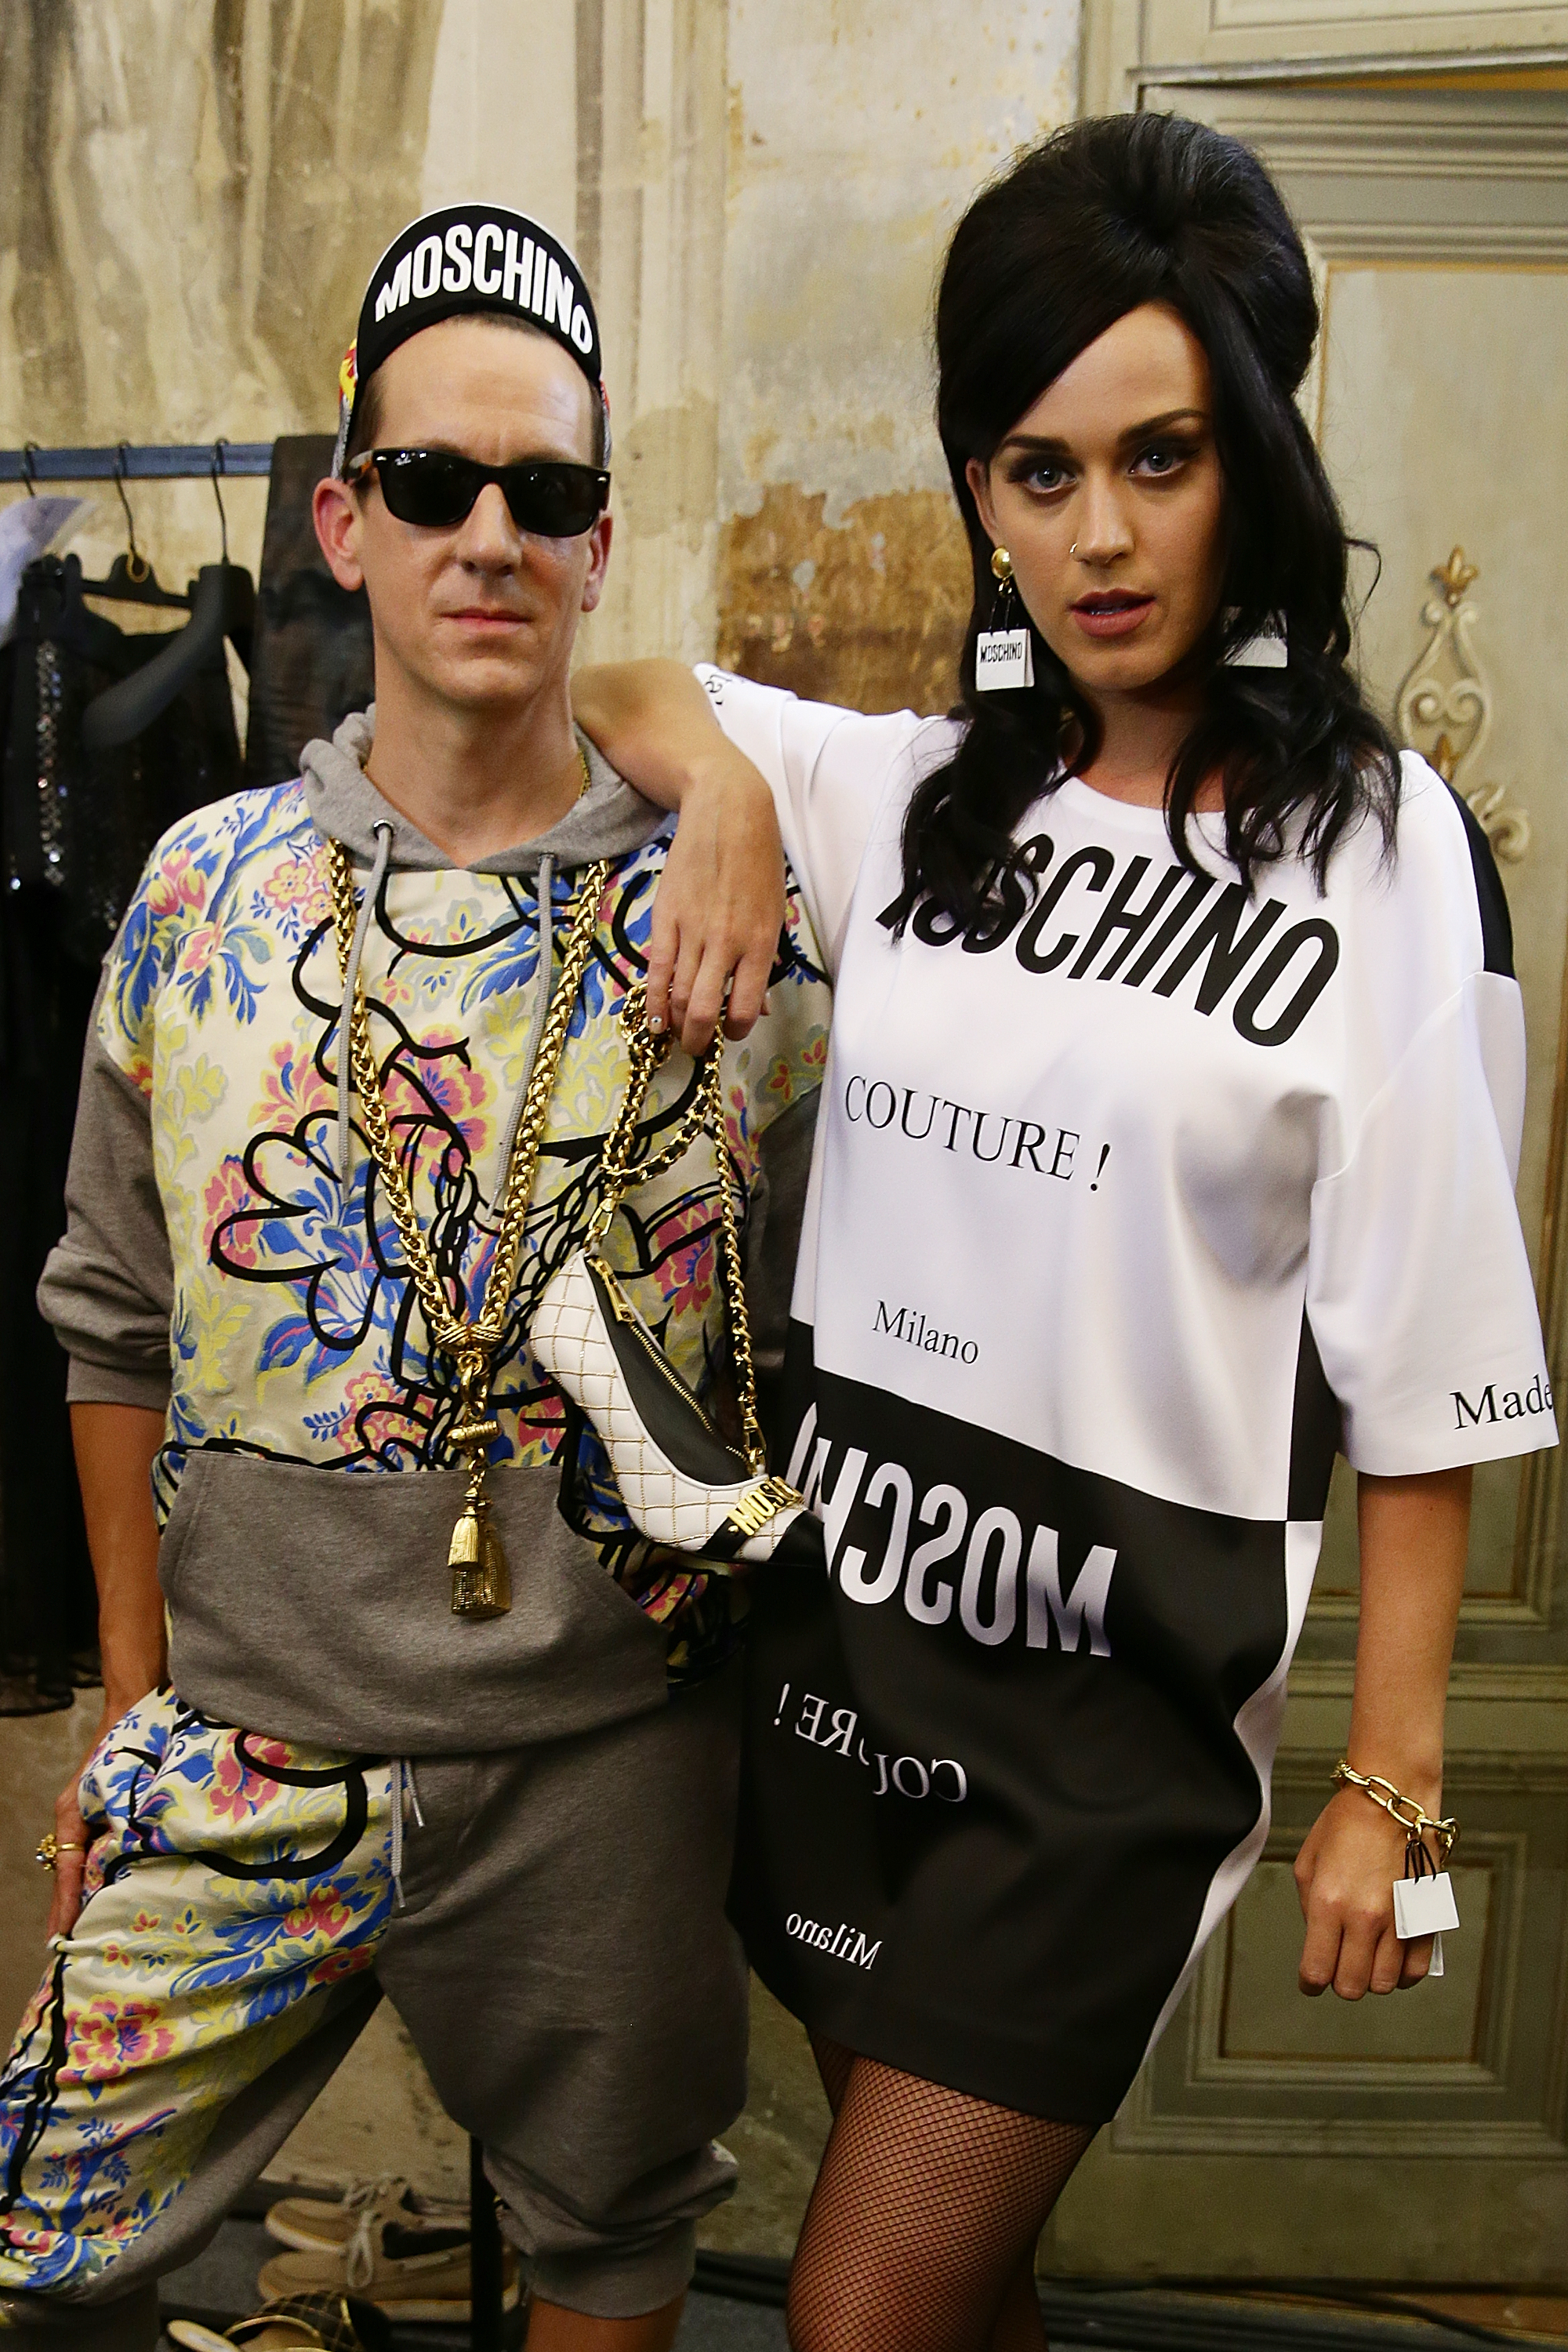 71a5f37bf00b Moschino s Sales Increased Tenfold Since Hiring Jeremy Scott.